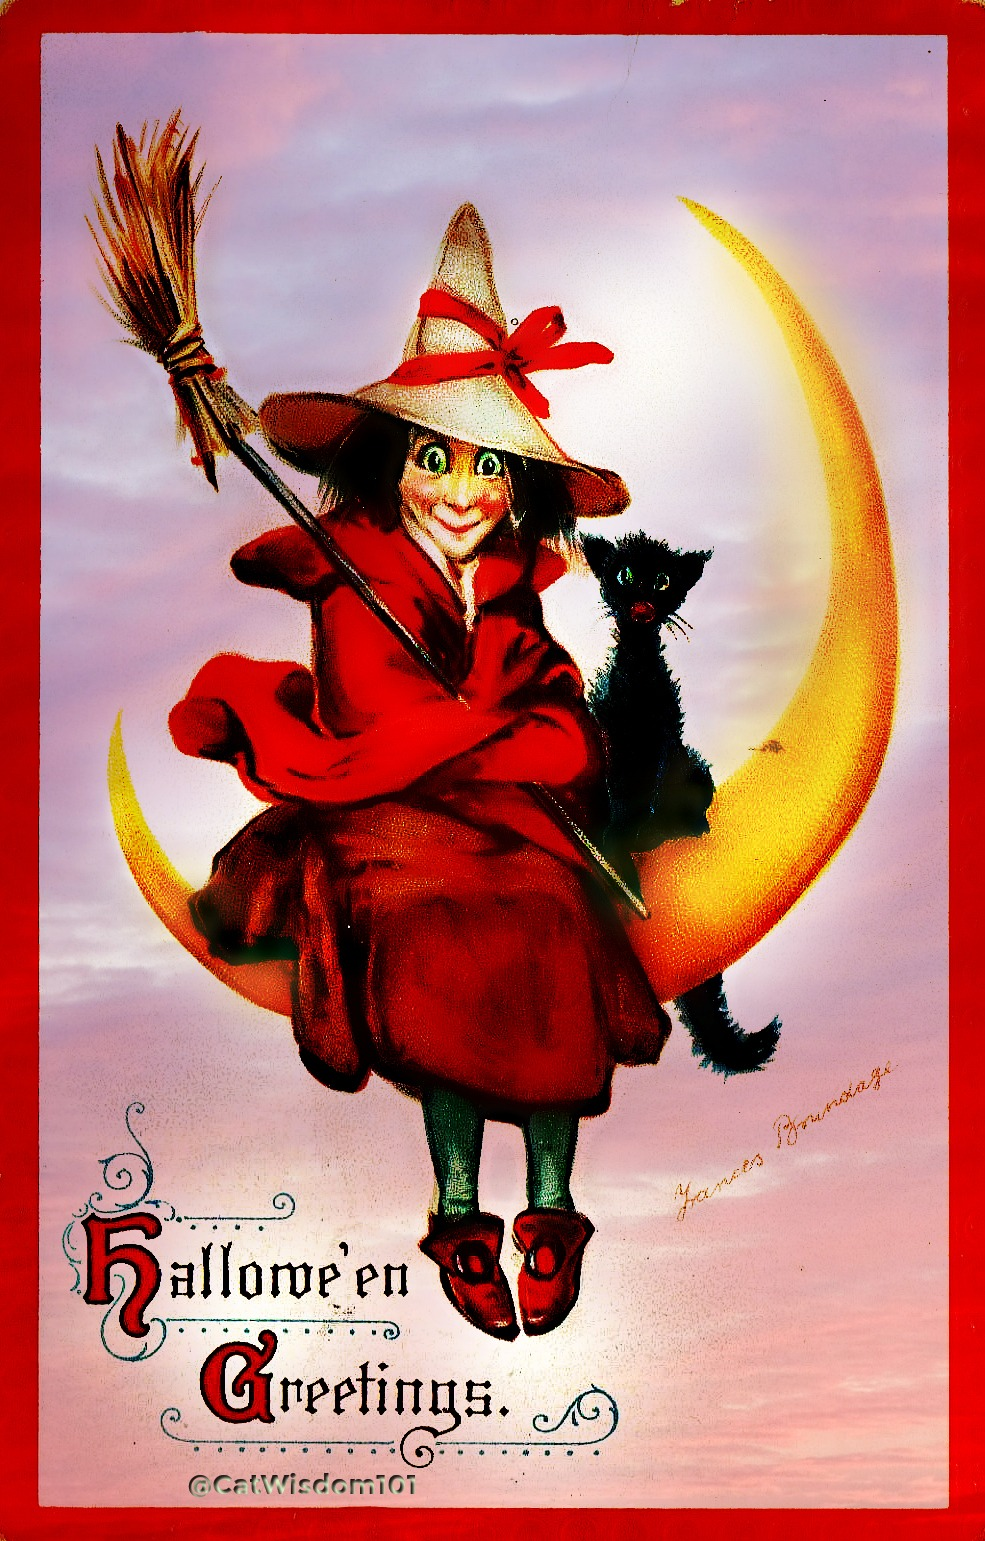 alloween_witch_Cat_moon_brundage